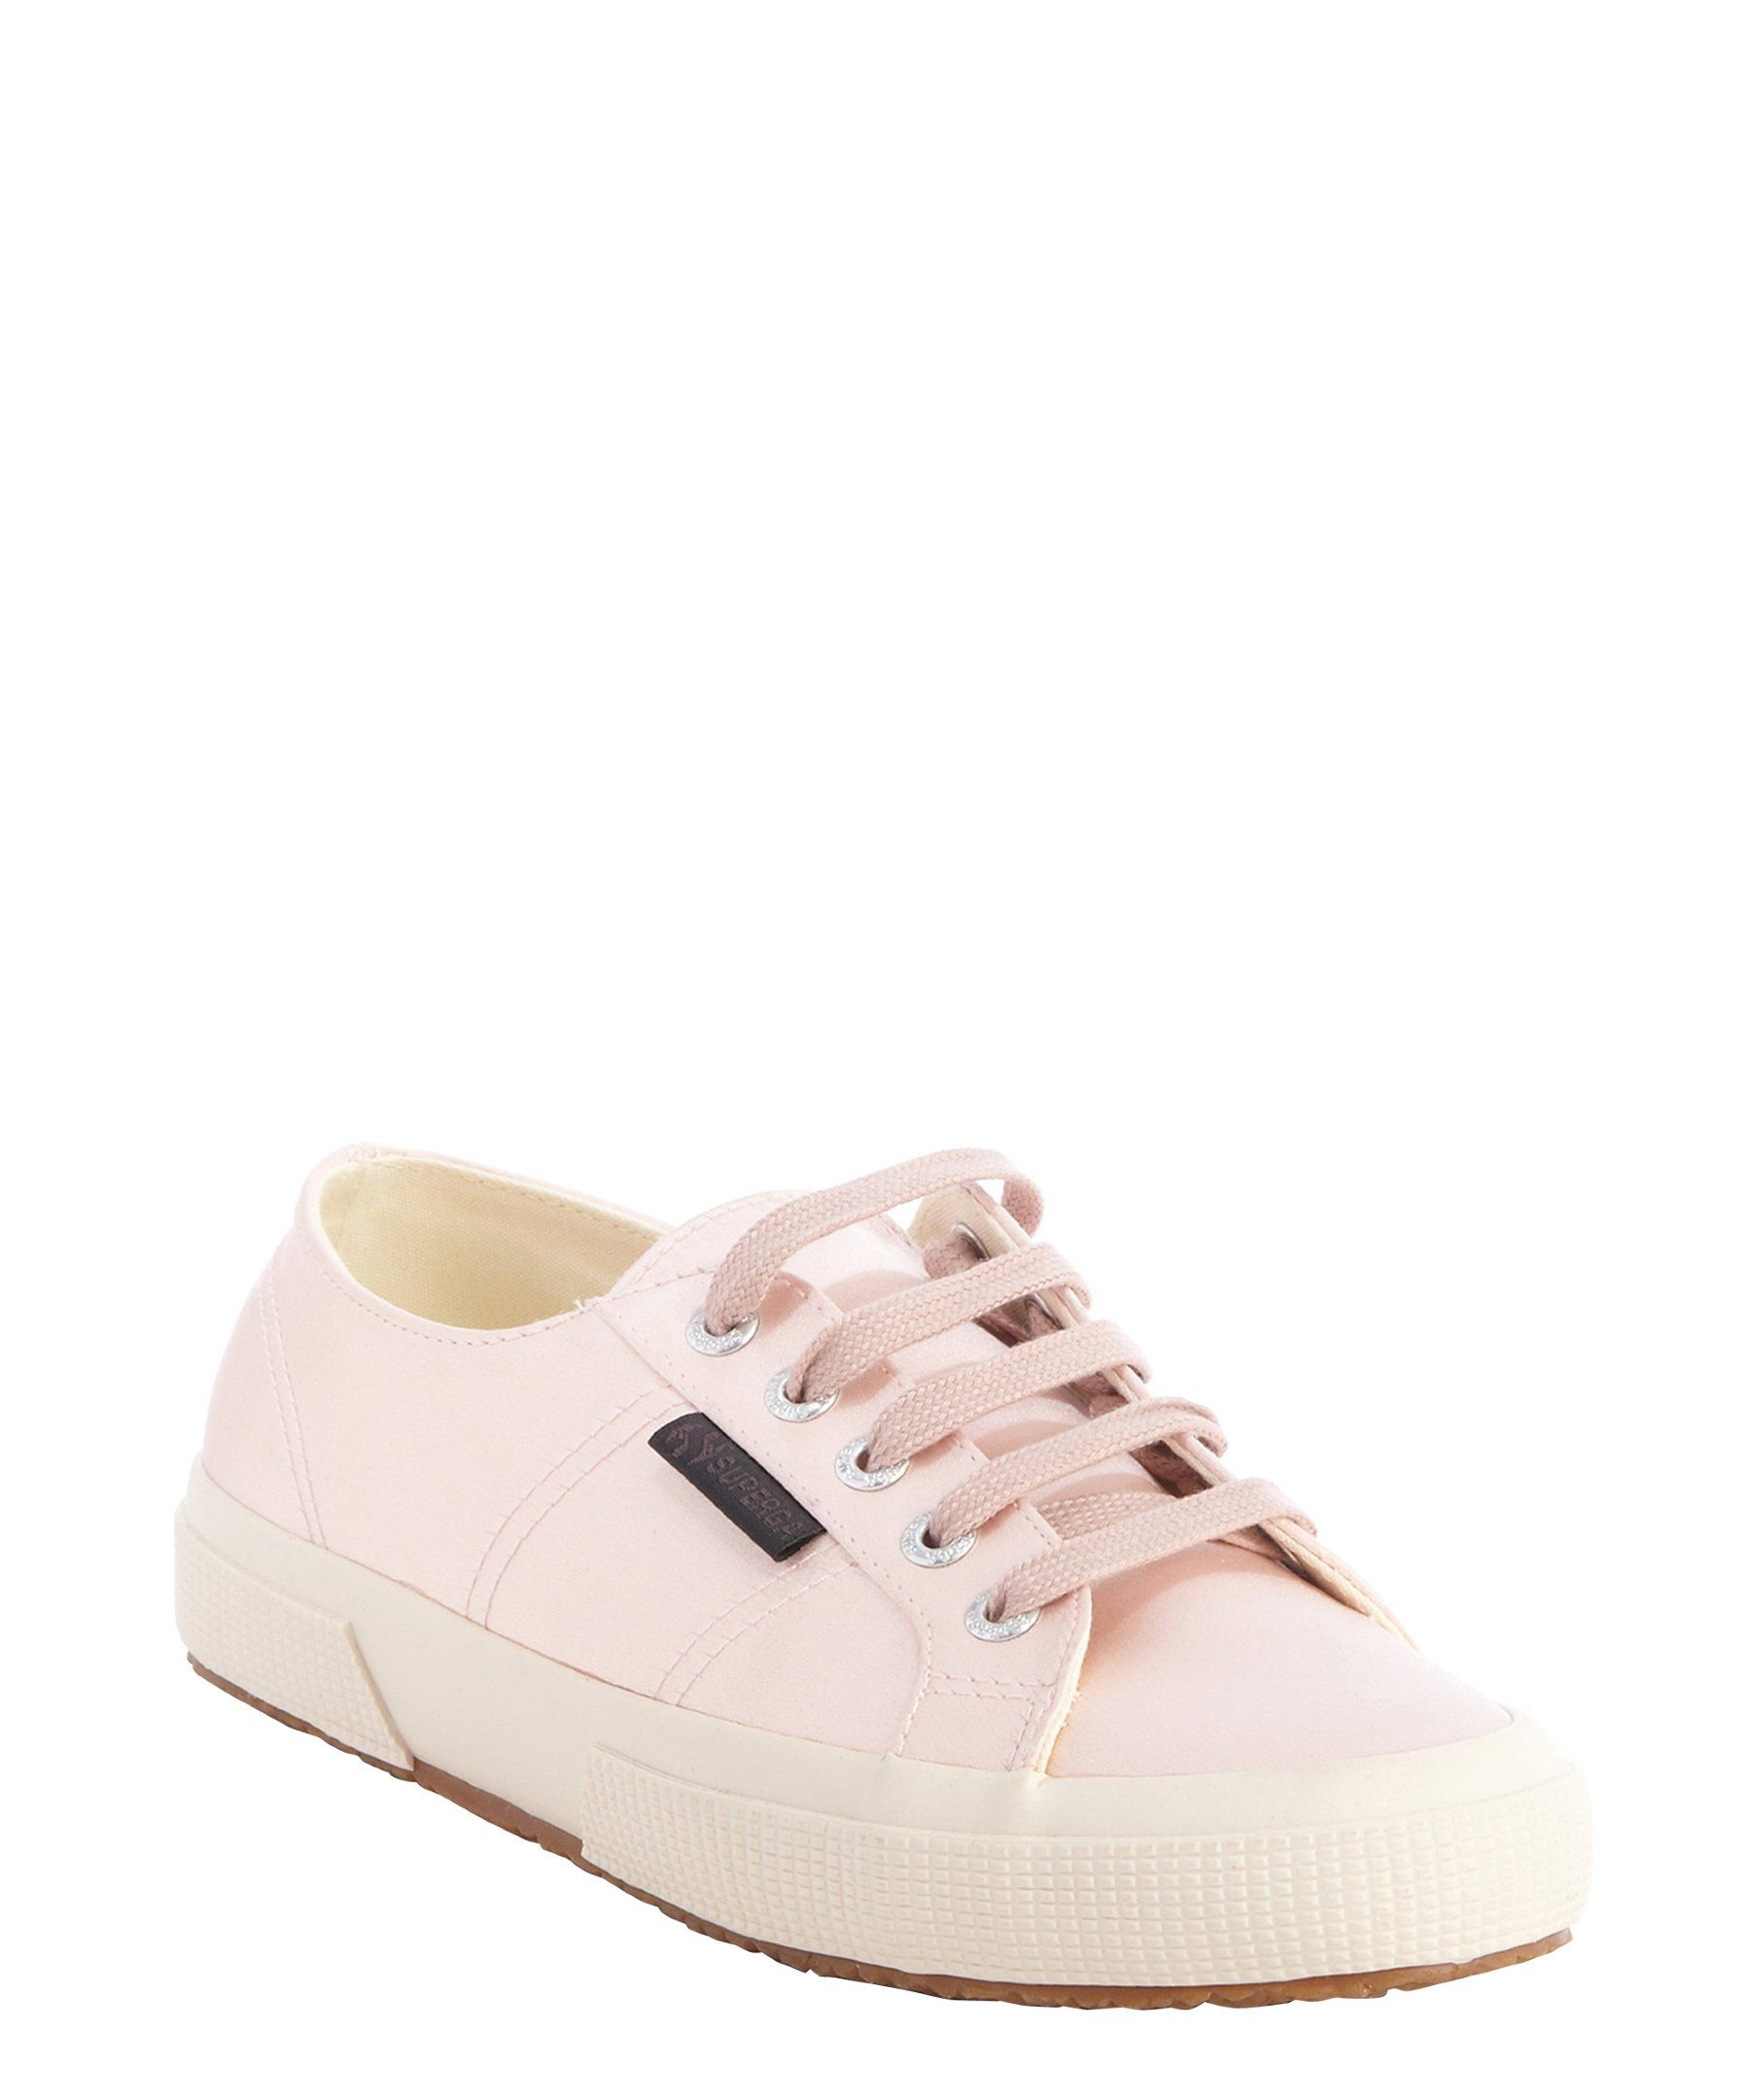 2750 Cotu Classic Sneakers in Pink